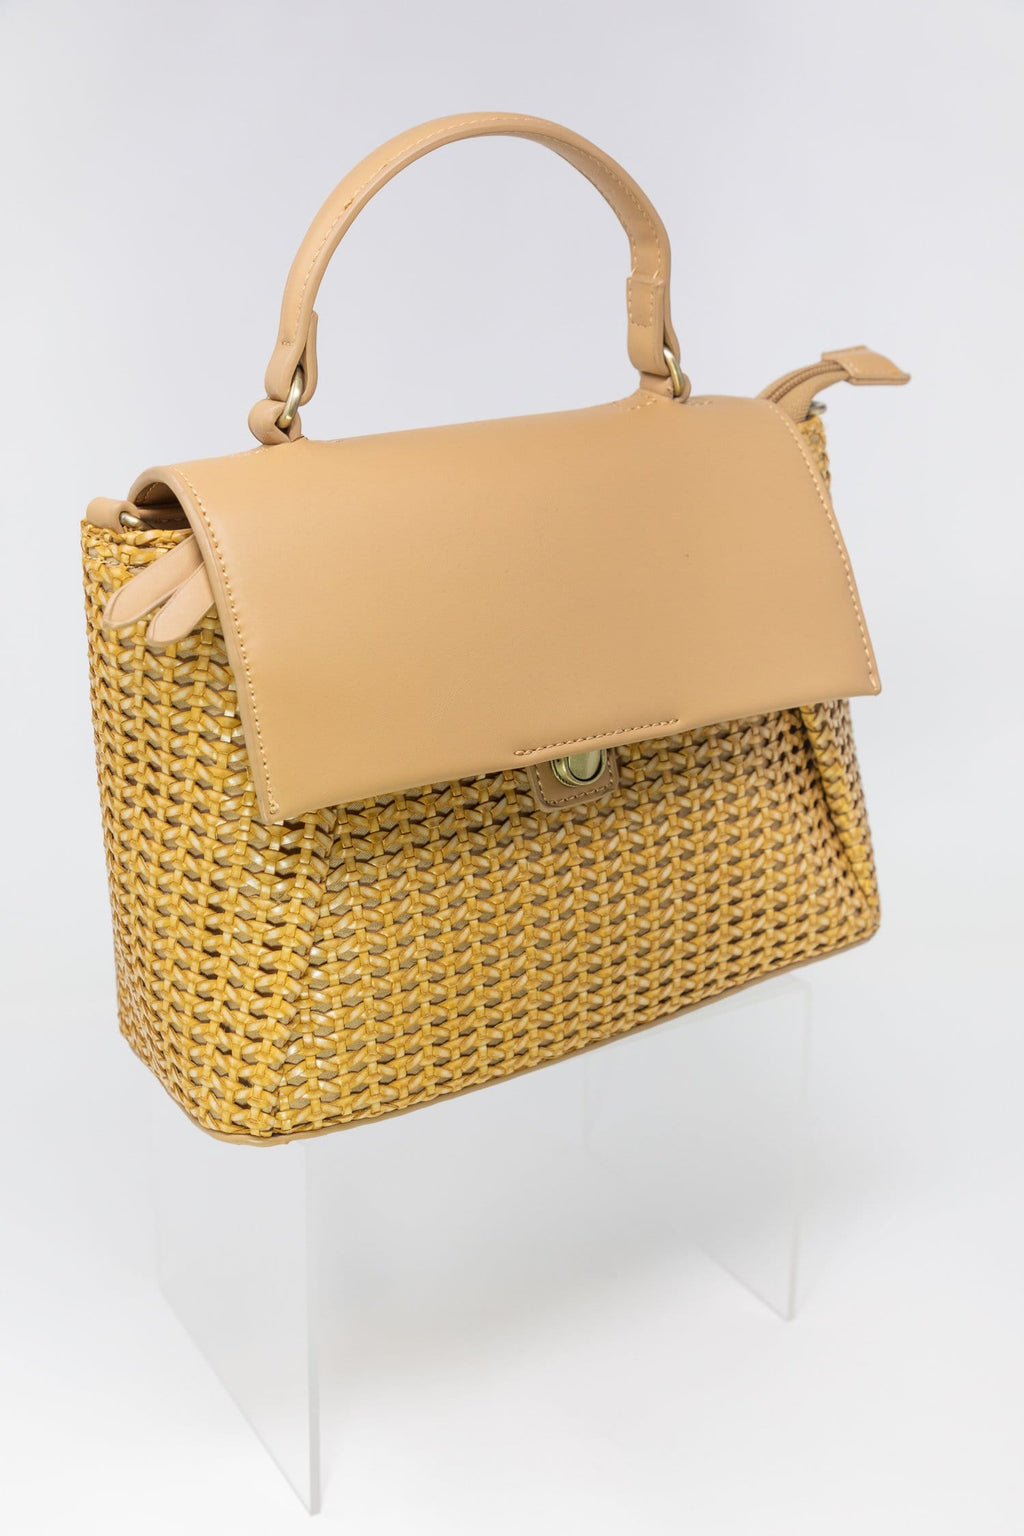 The Sydney Rattan Crossbody | Wild Dove Boutique